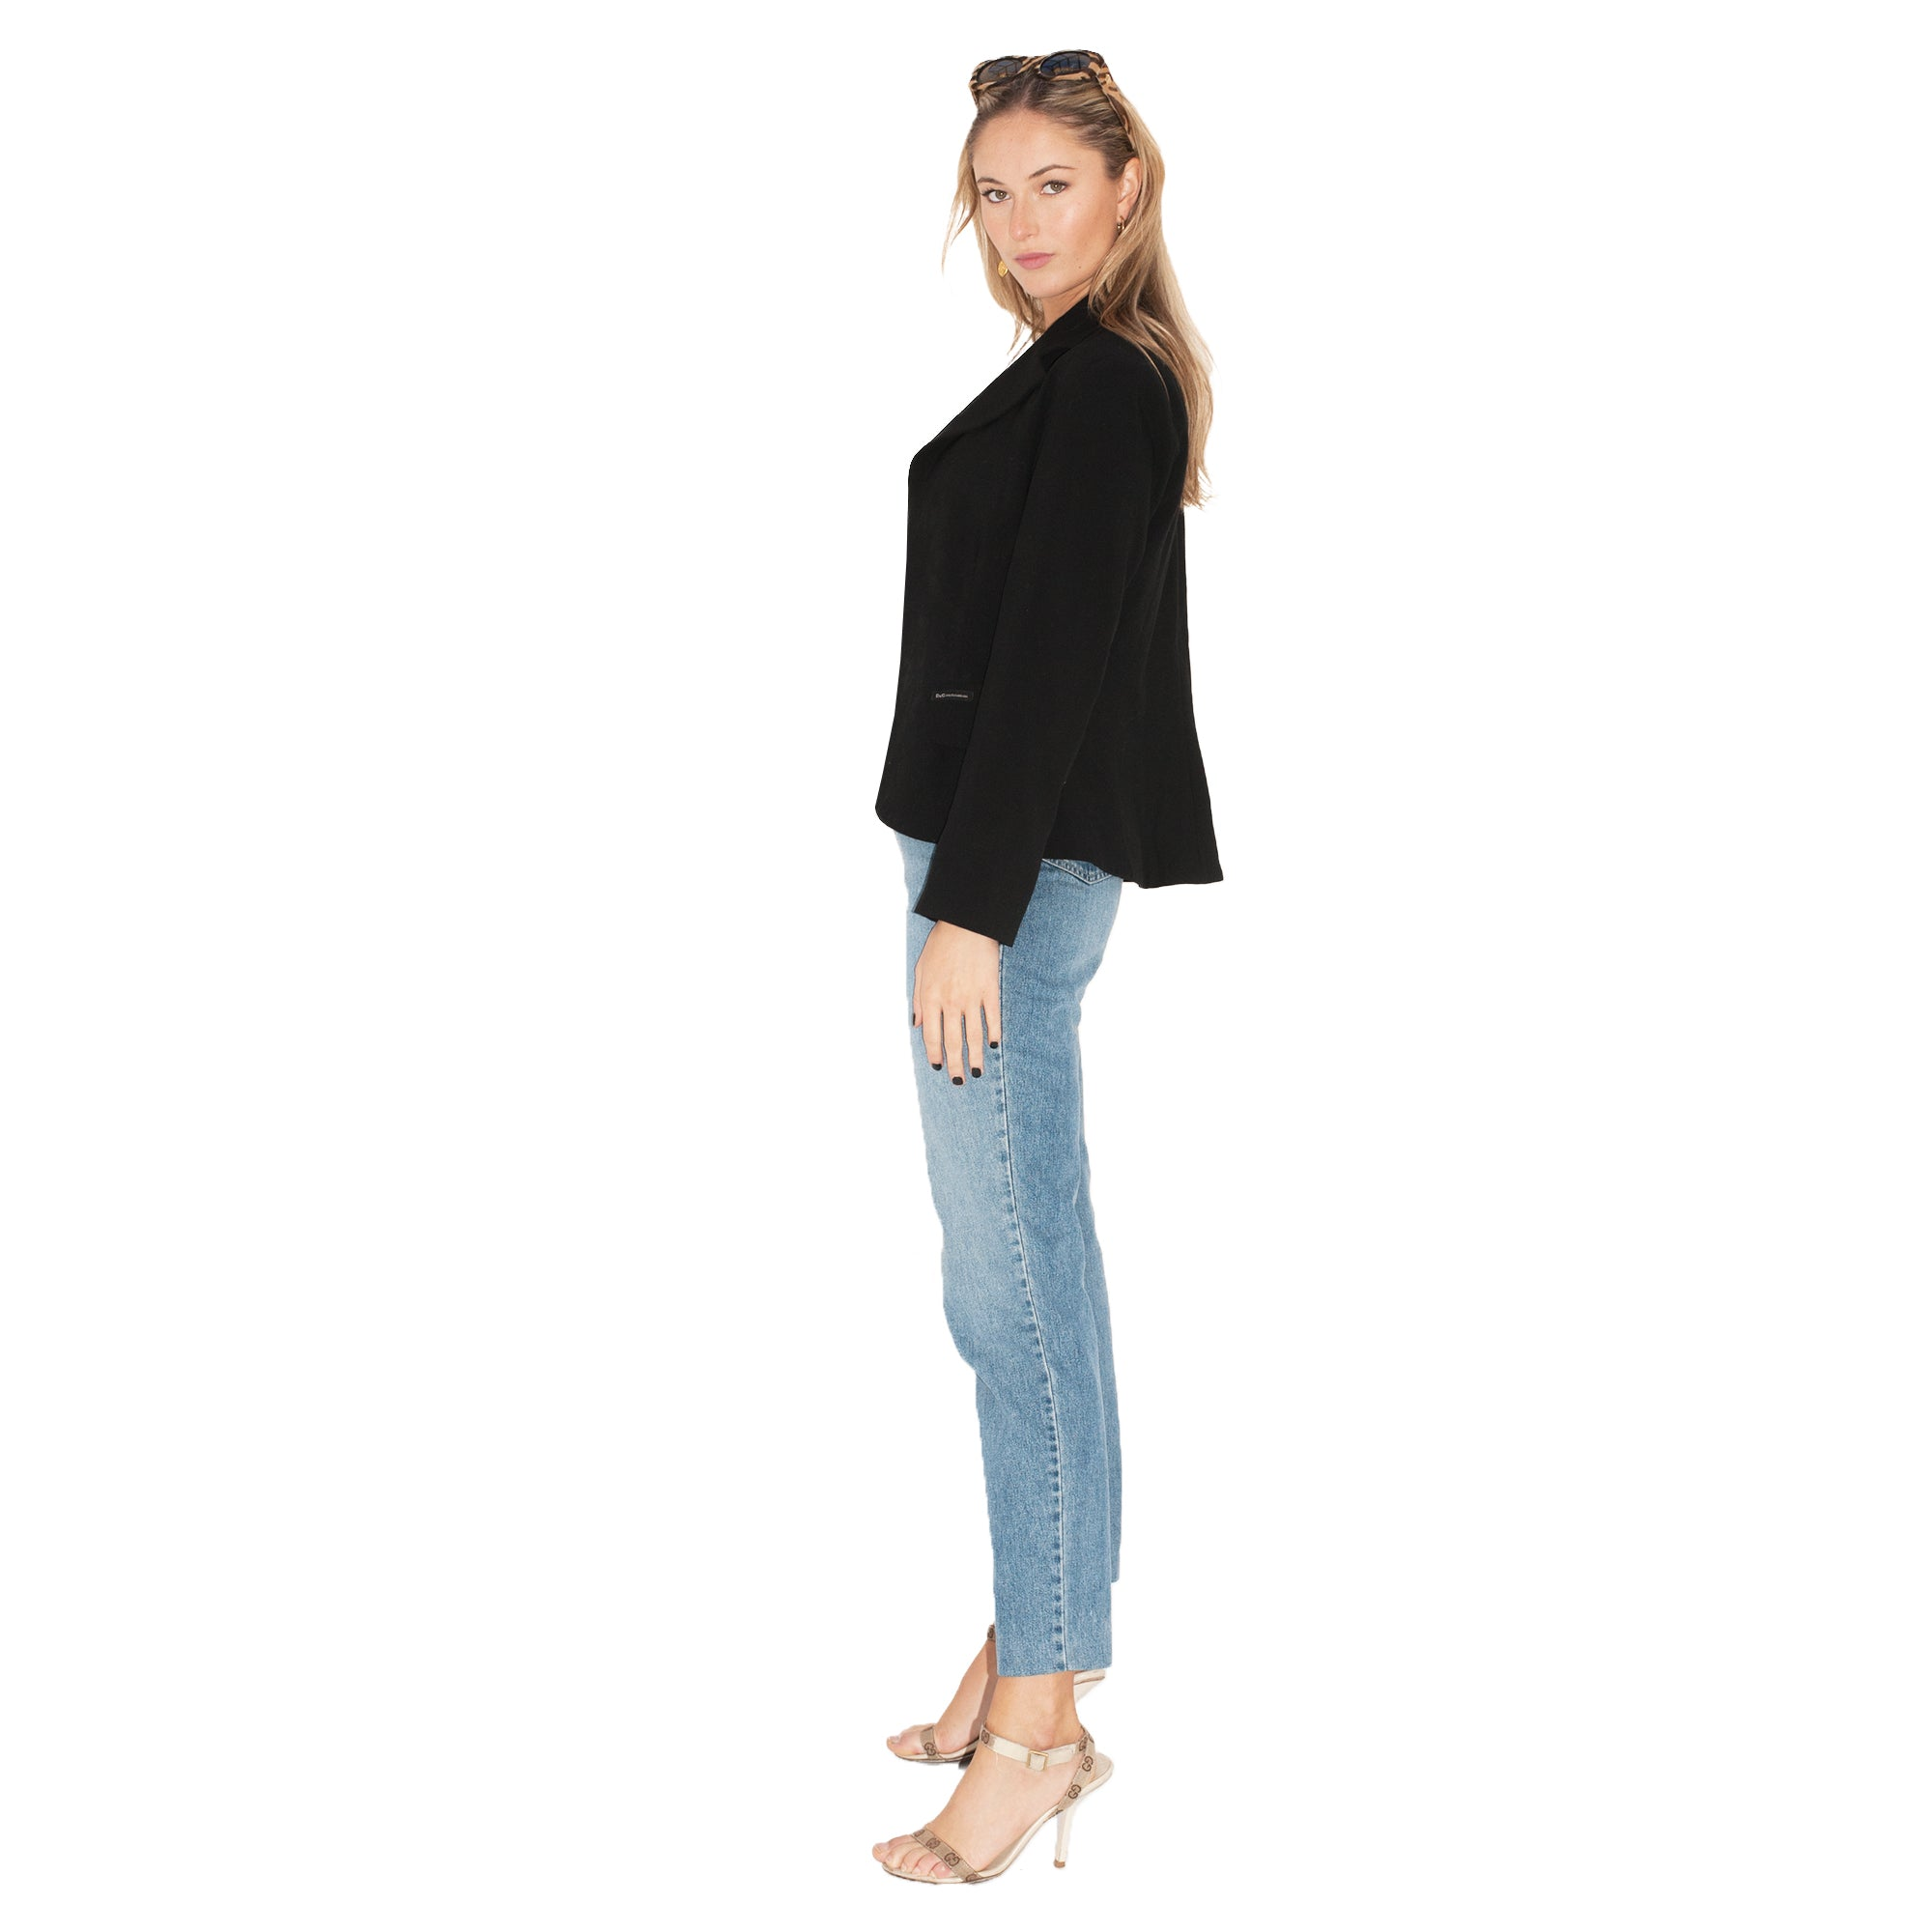 Dolce and Gabbana Blazer (Black) UK 6-10